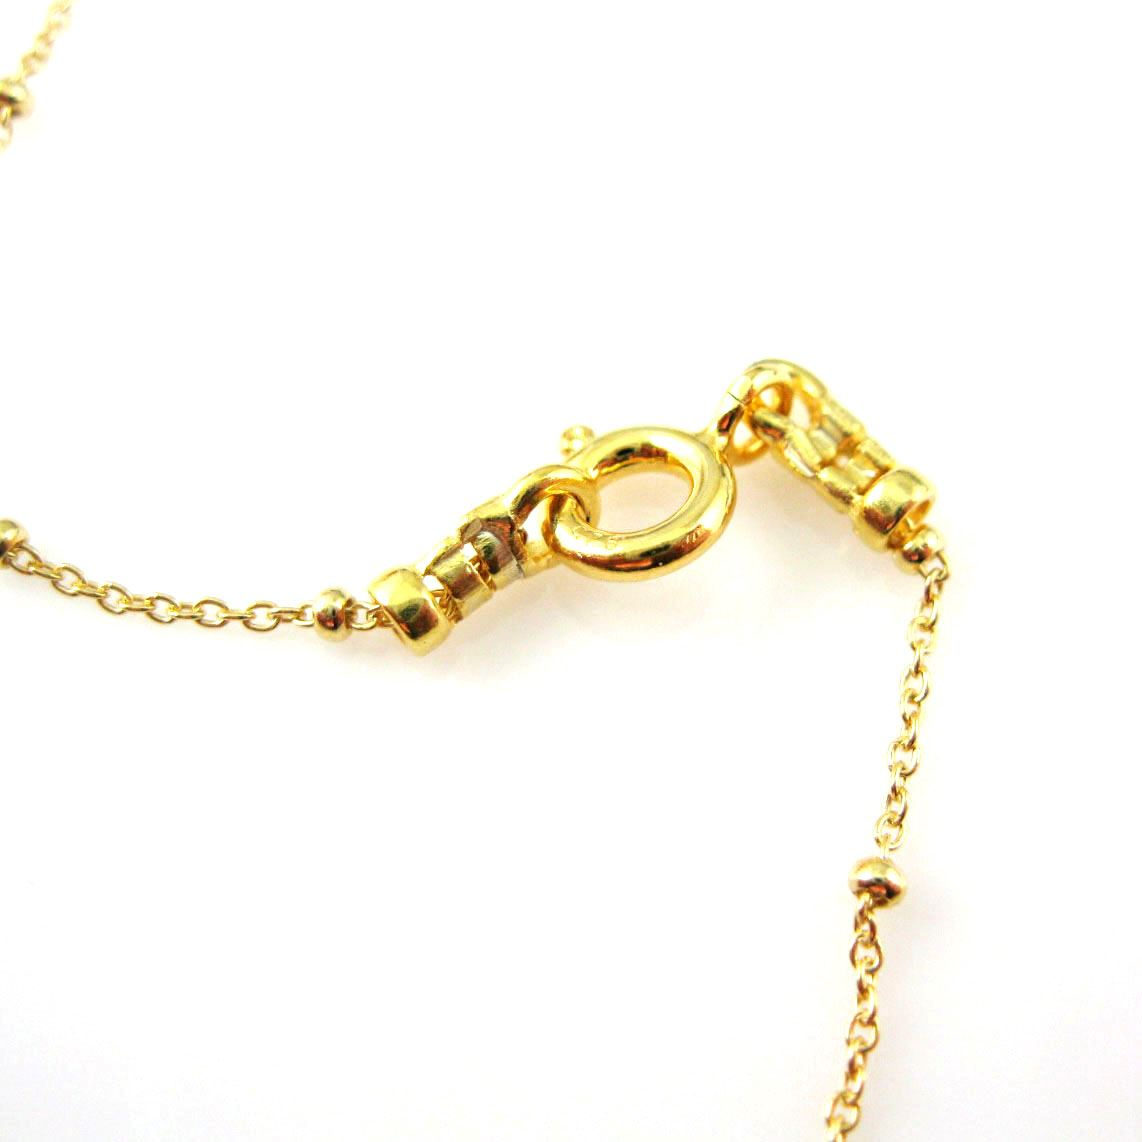 Gold Necklace,Vermeil Sterling Silver Chain Necklace - Bracelet Chain, Anklet Chain - Cable  Beaded Chain - Satellite Necklace Chain- Long Necklace - All Sizes